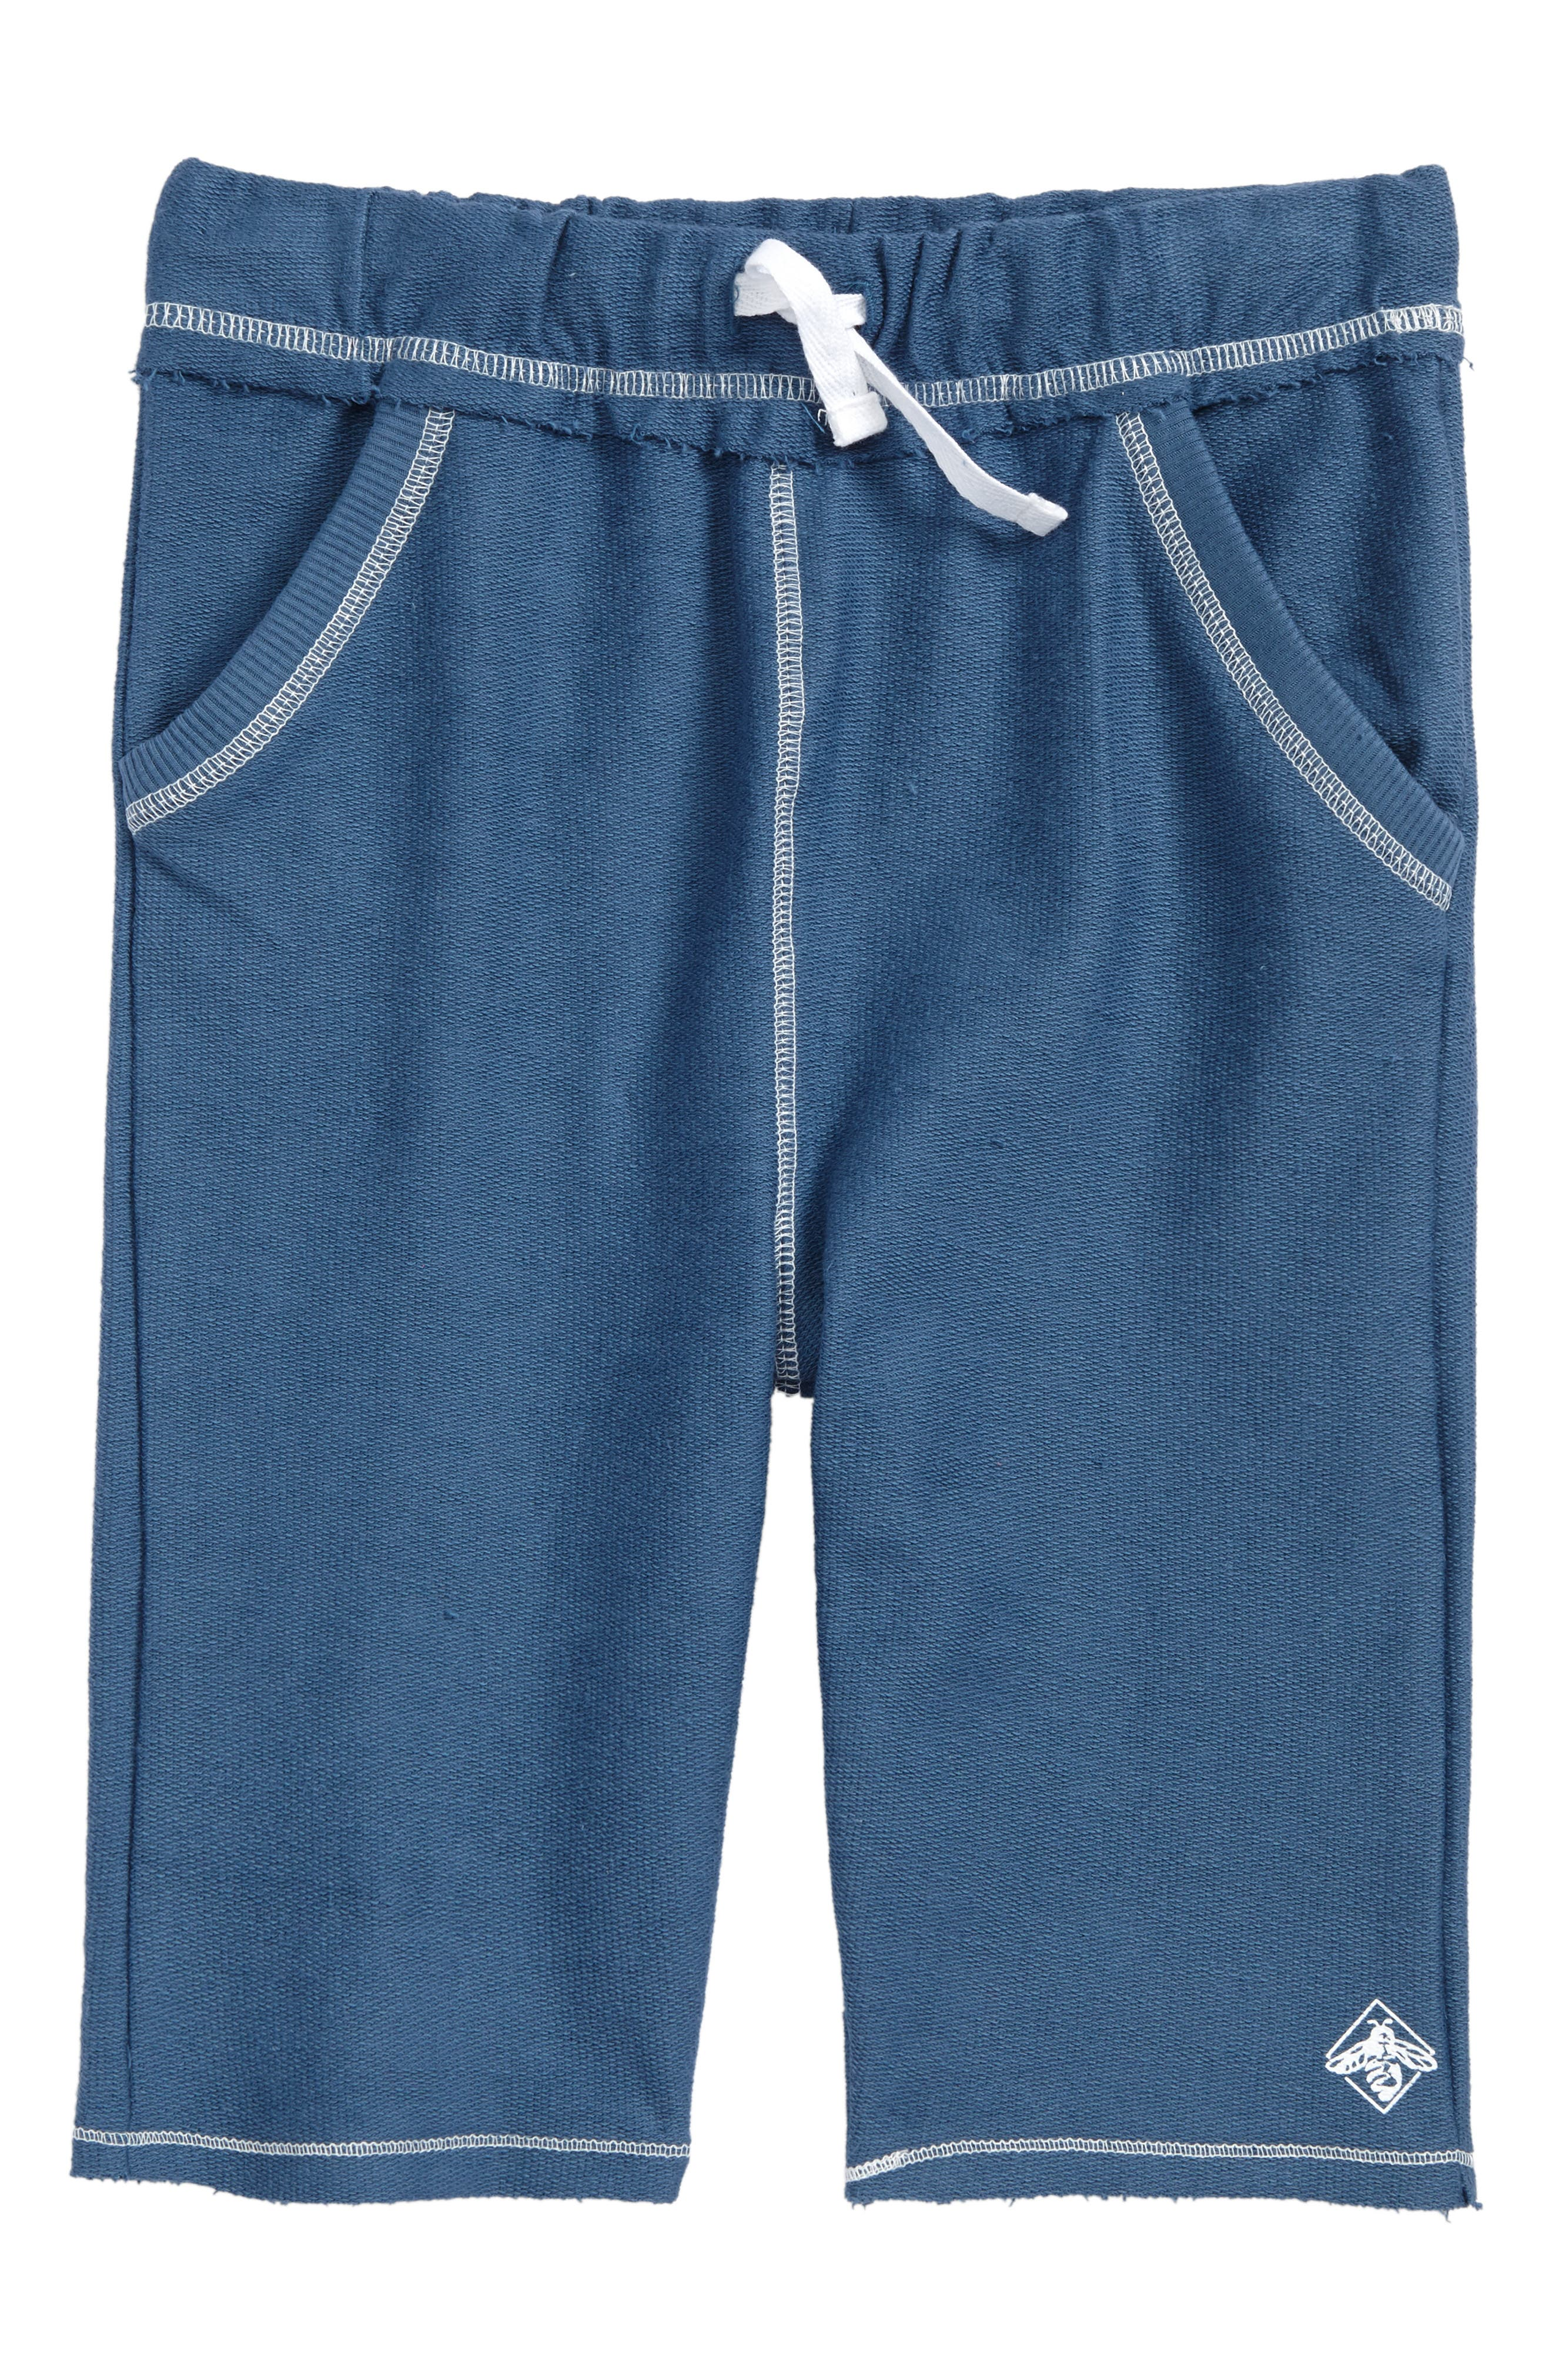 Burt's Bees Baby Organic French Terry Cotton Sweatpants (Toddler Boys & Little Boys)